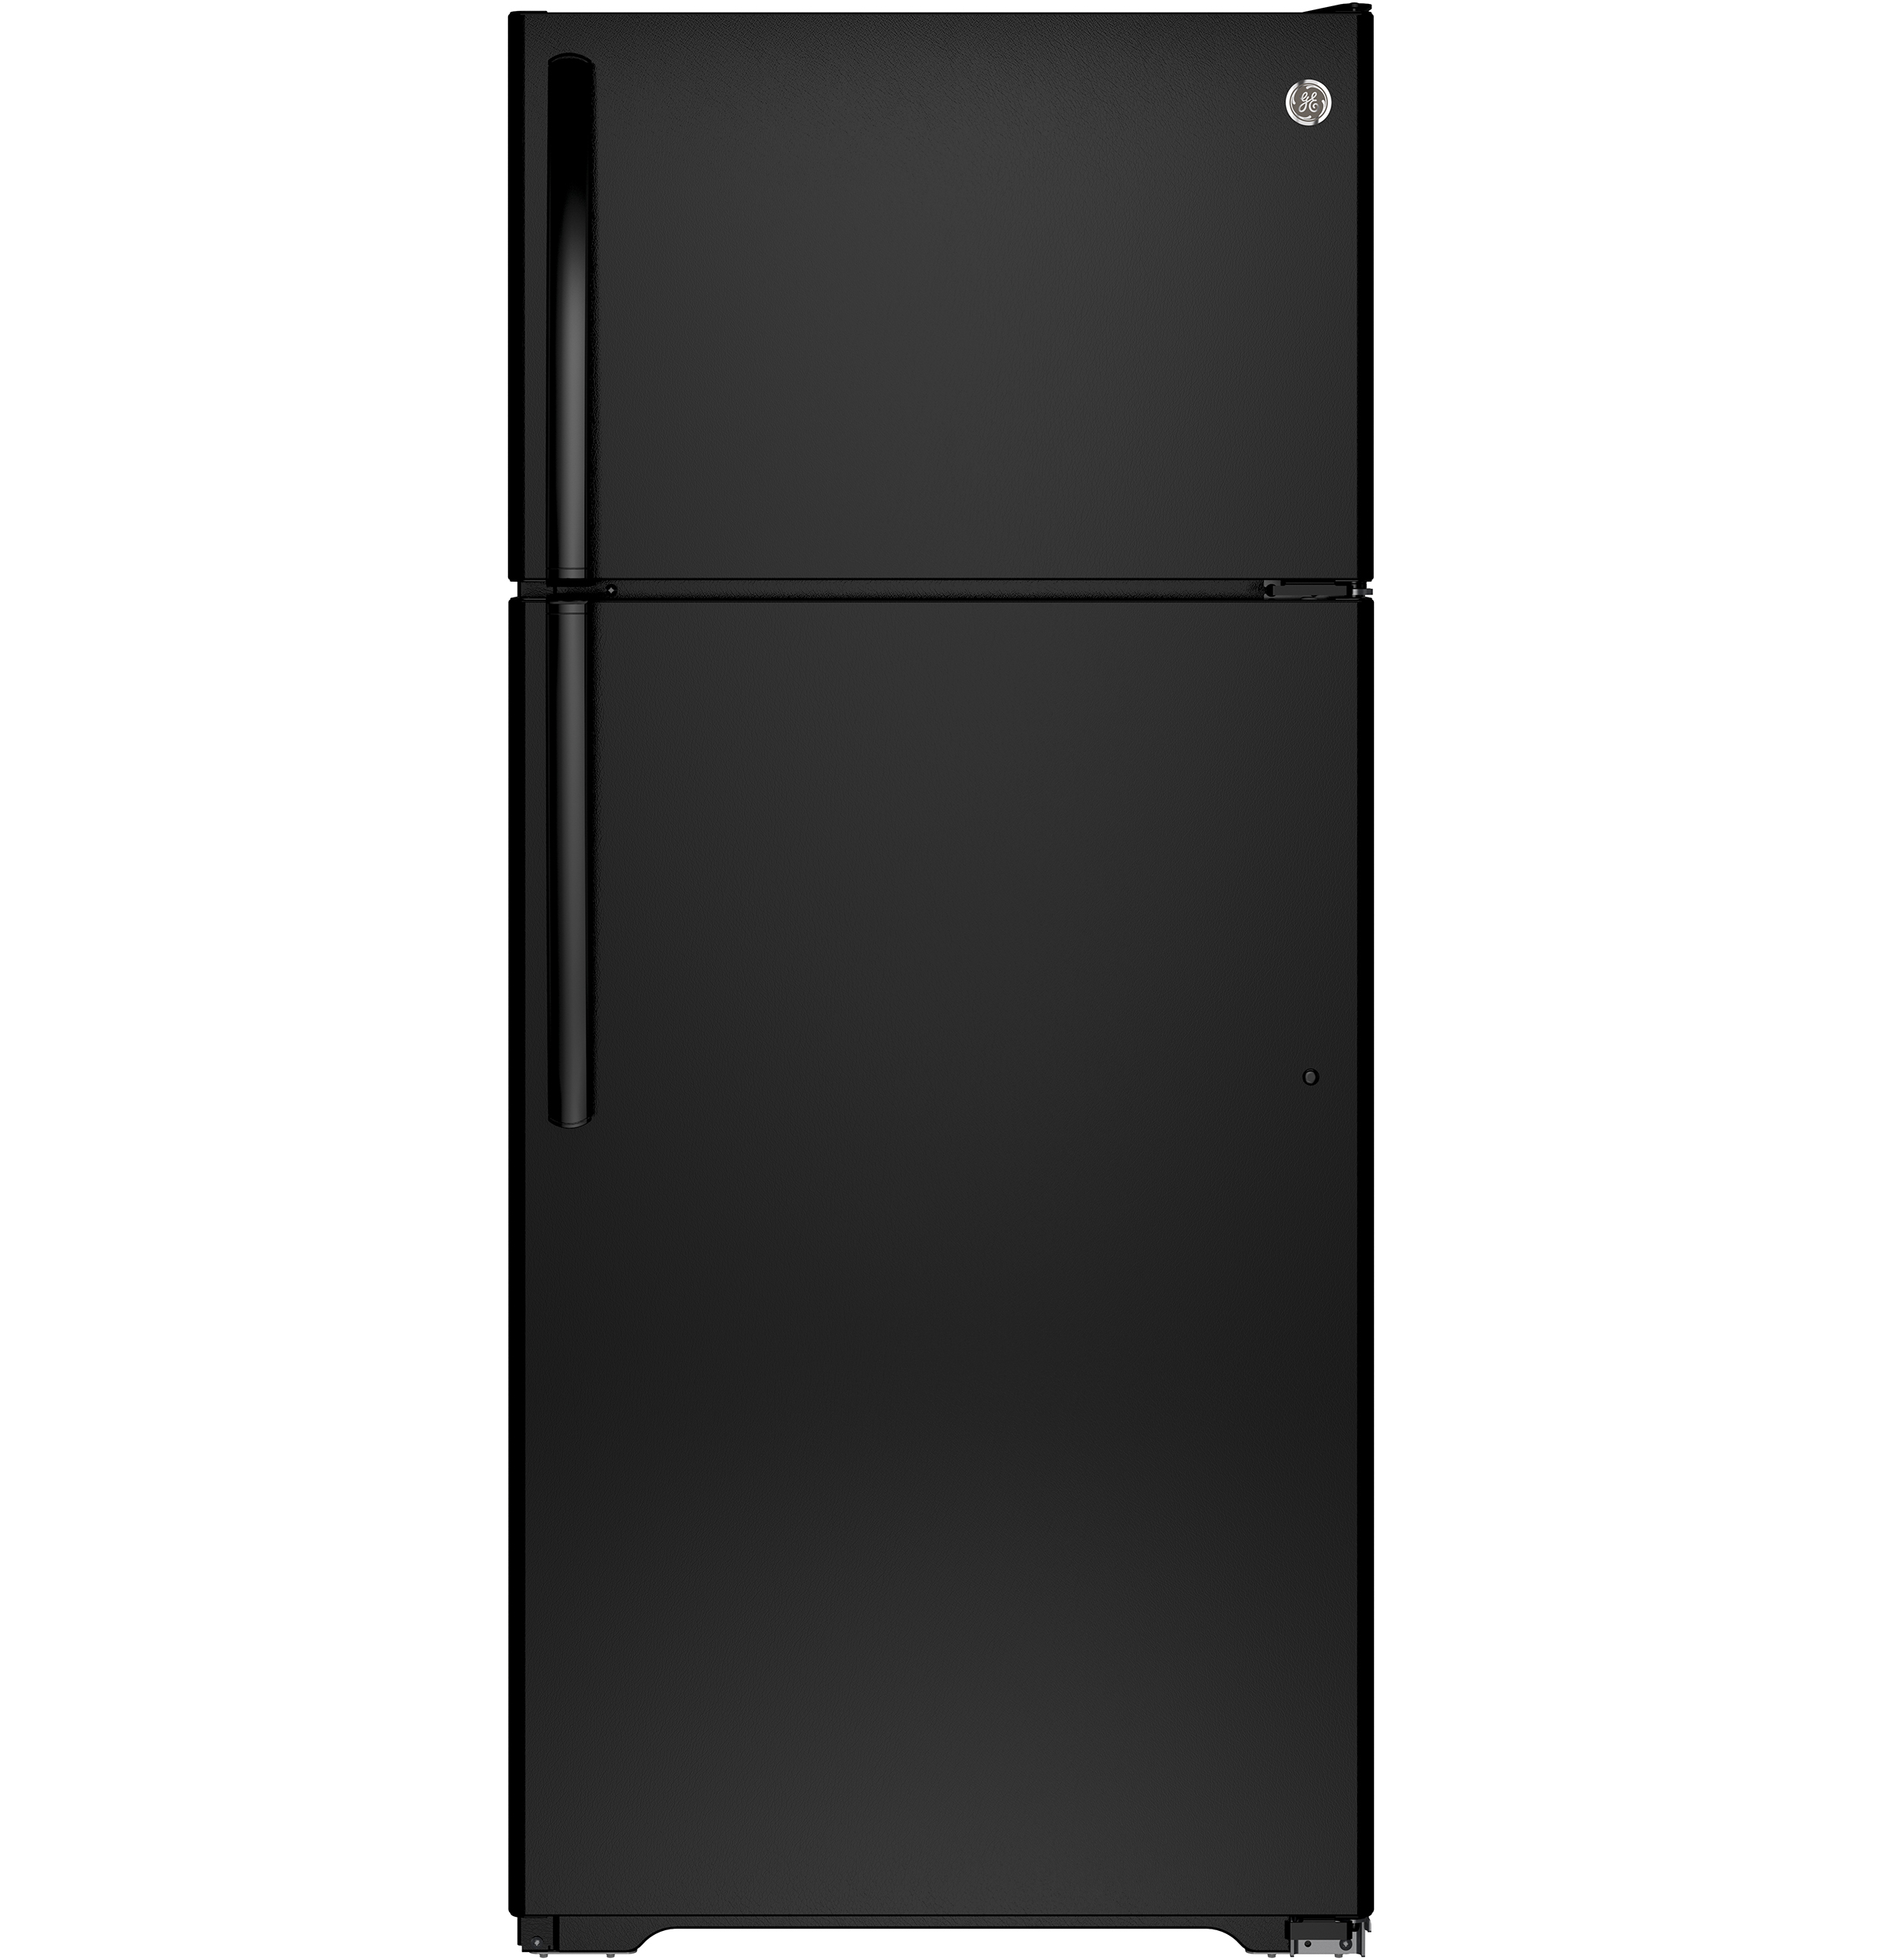 GE GE® ENERGY STAR® 15.5 Cu. Ft. Top-Freezer Refrigerator